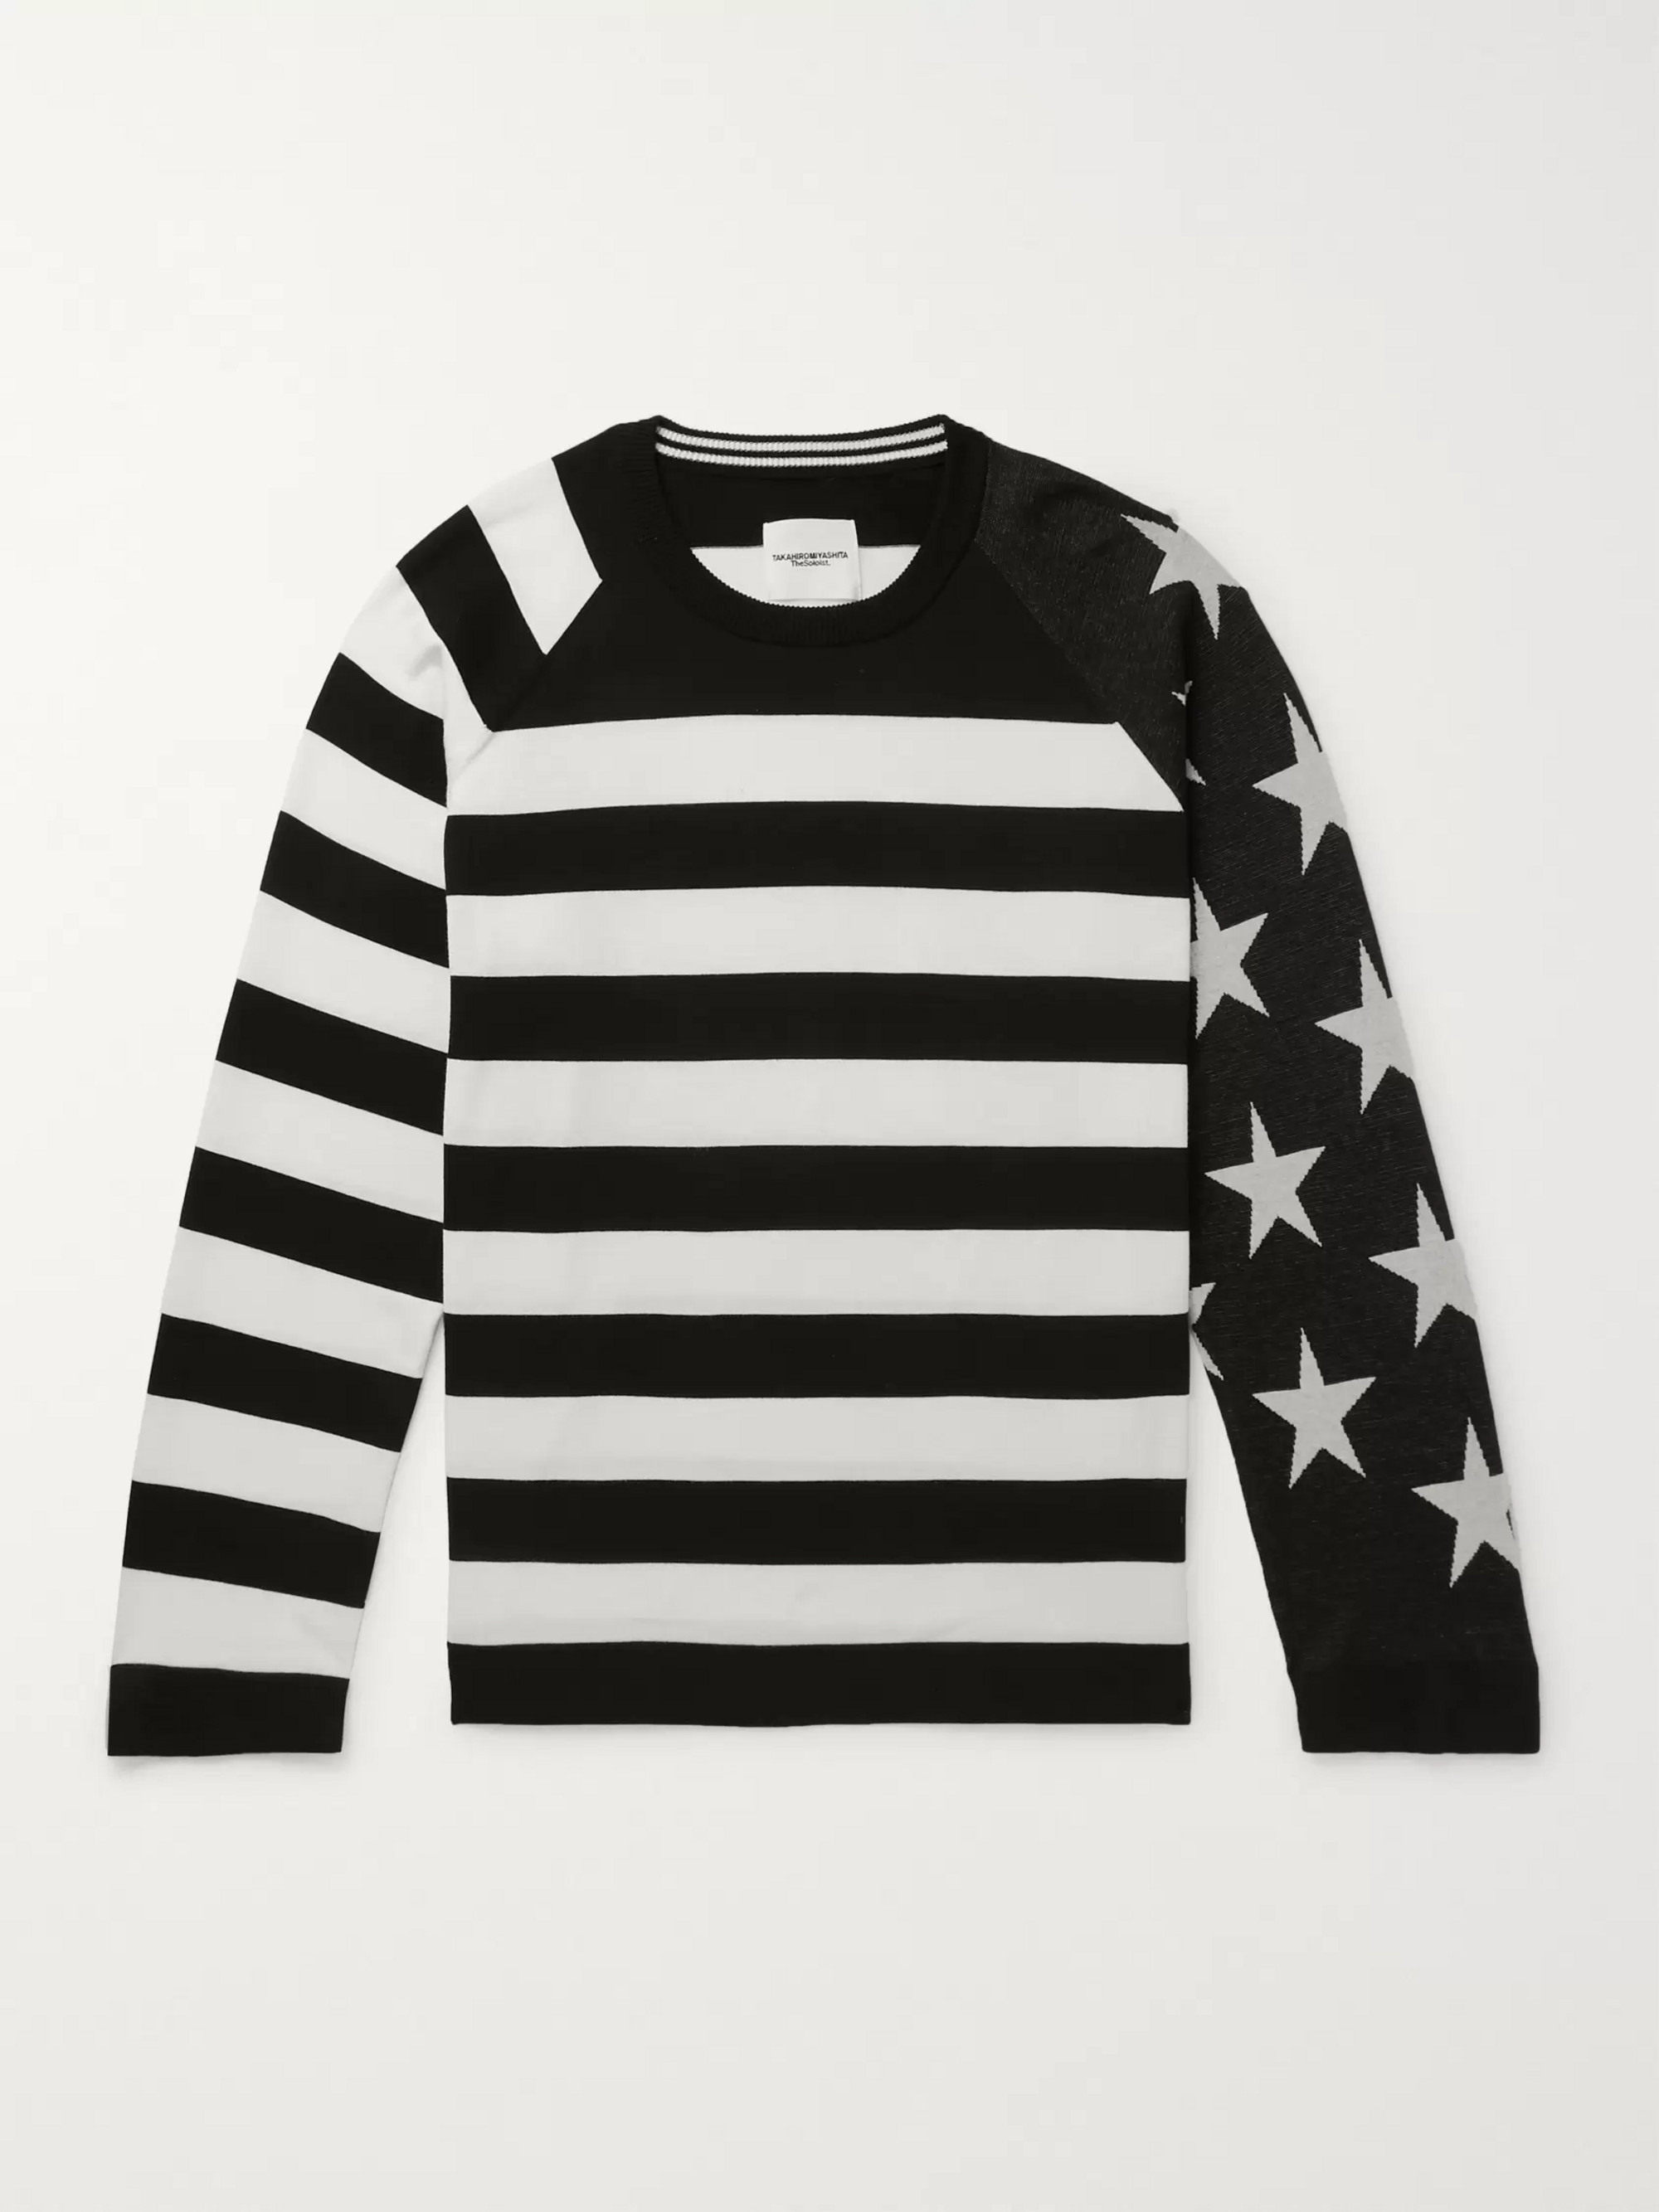 TAKAHIROMIYASHITA TheSoloist. Intarsia Striped Cotton Sweater